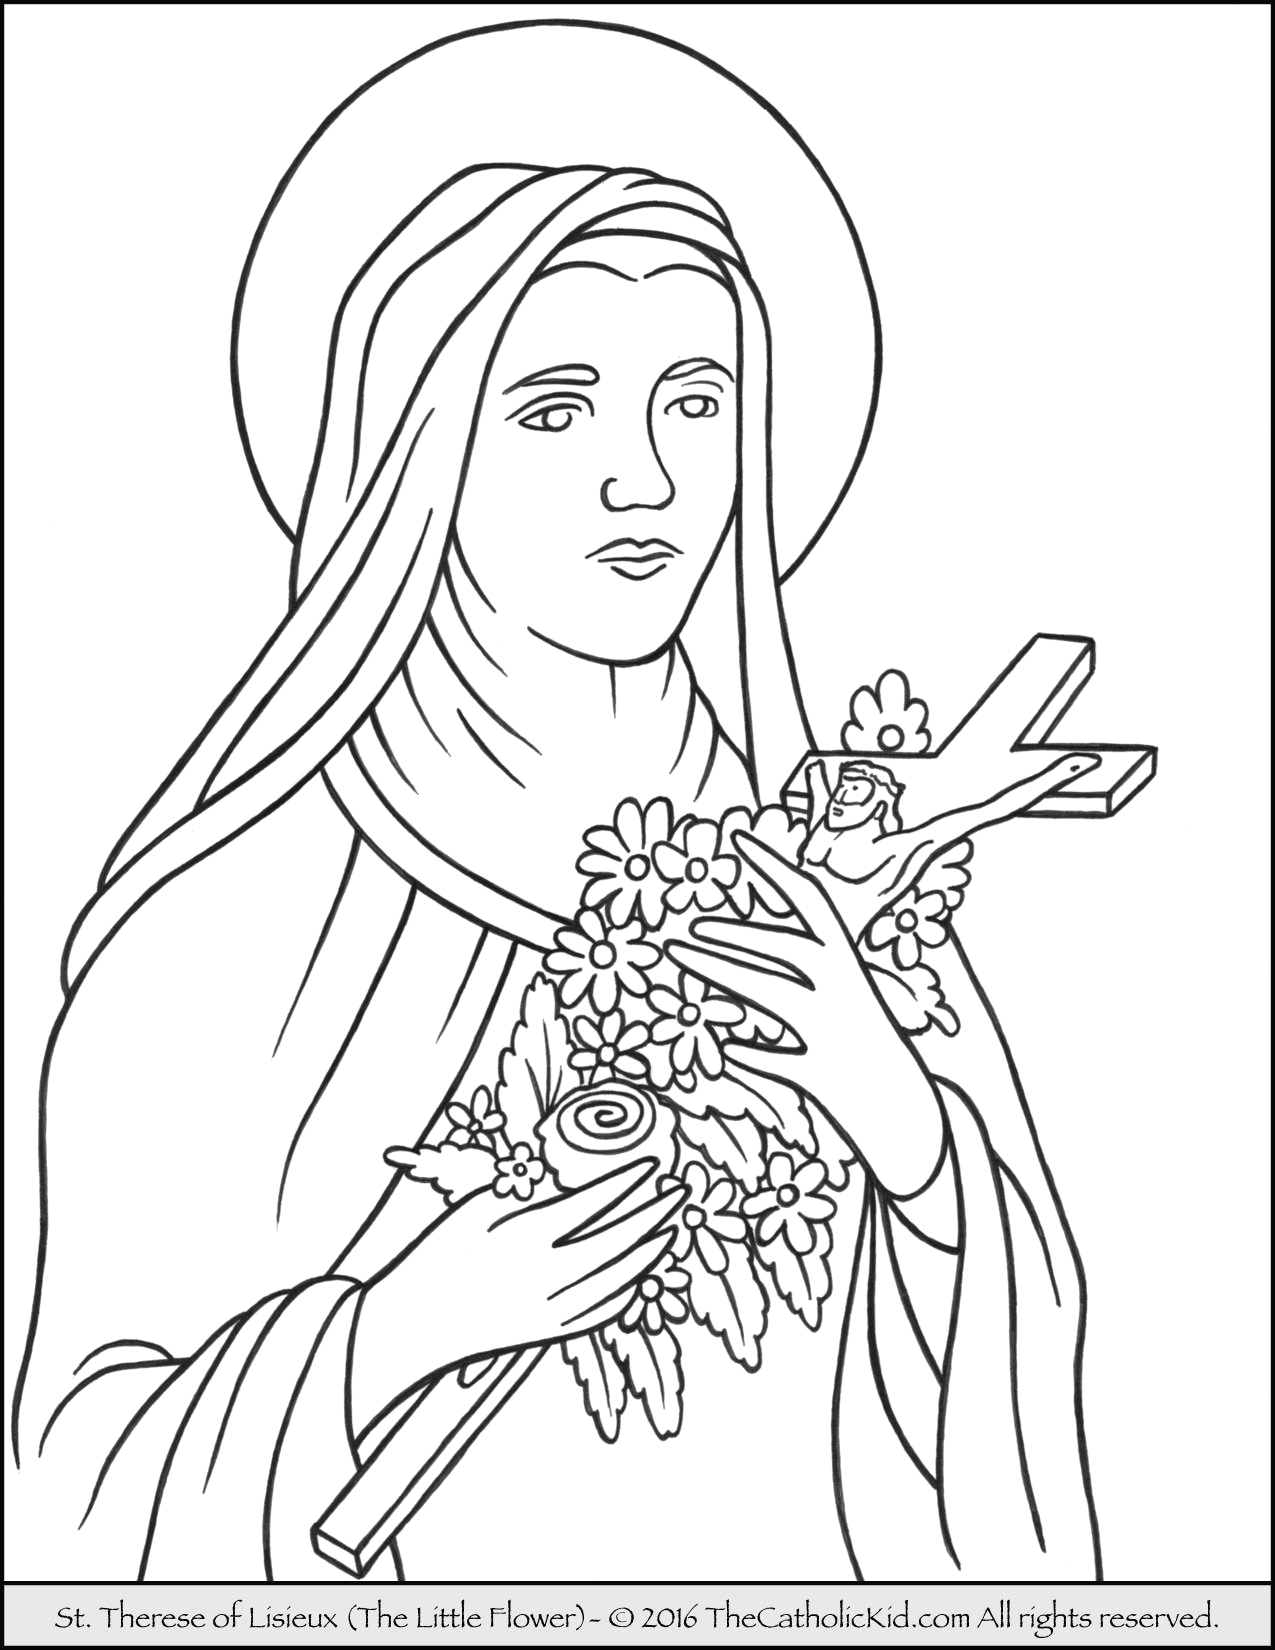 St therese the Little Flower Coloring Page Saint therese Of Lisieux Little Flower Coloring Page